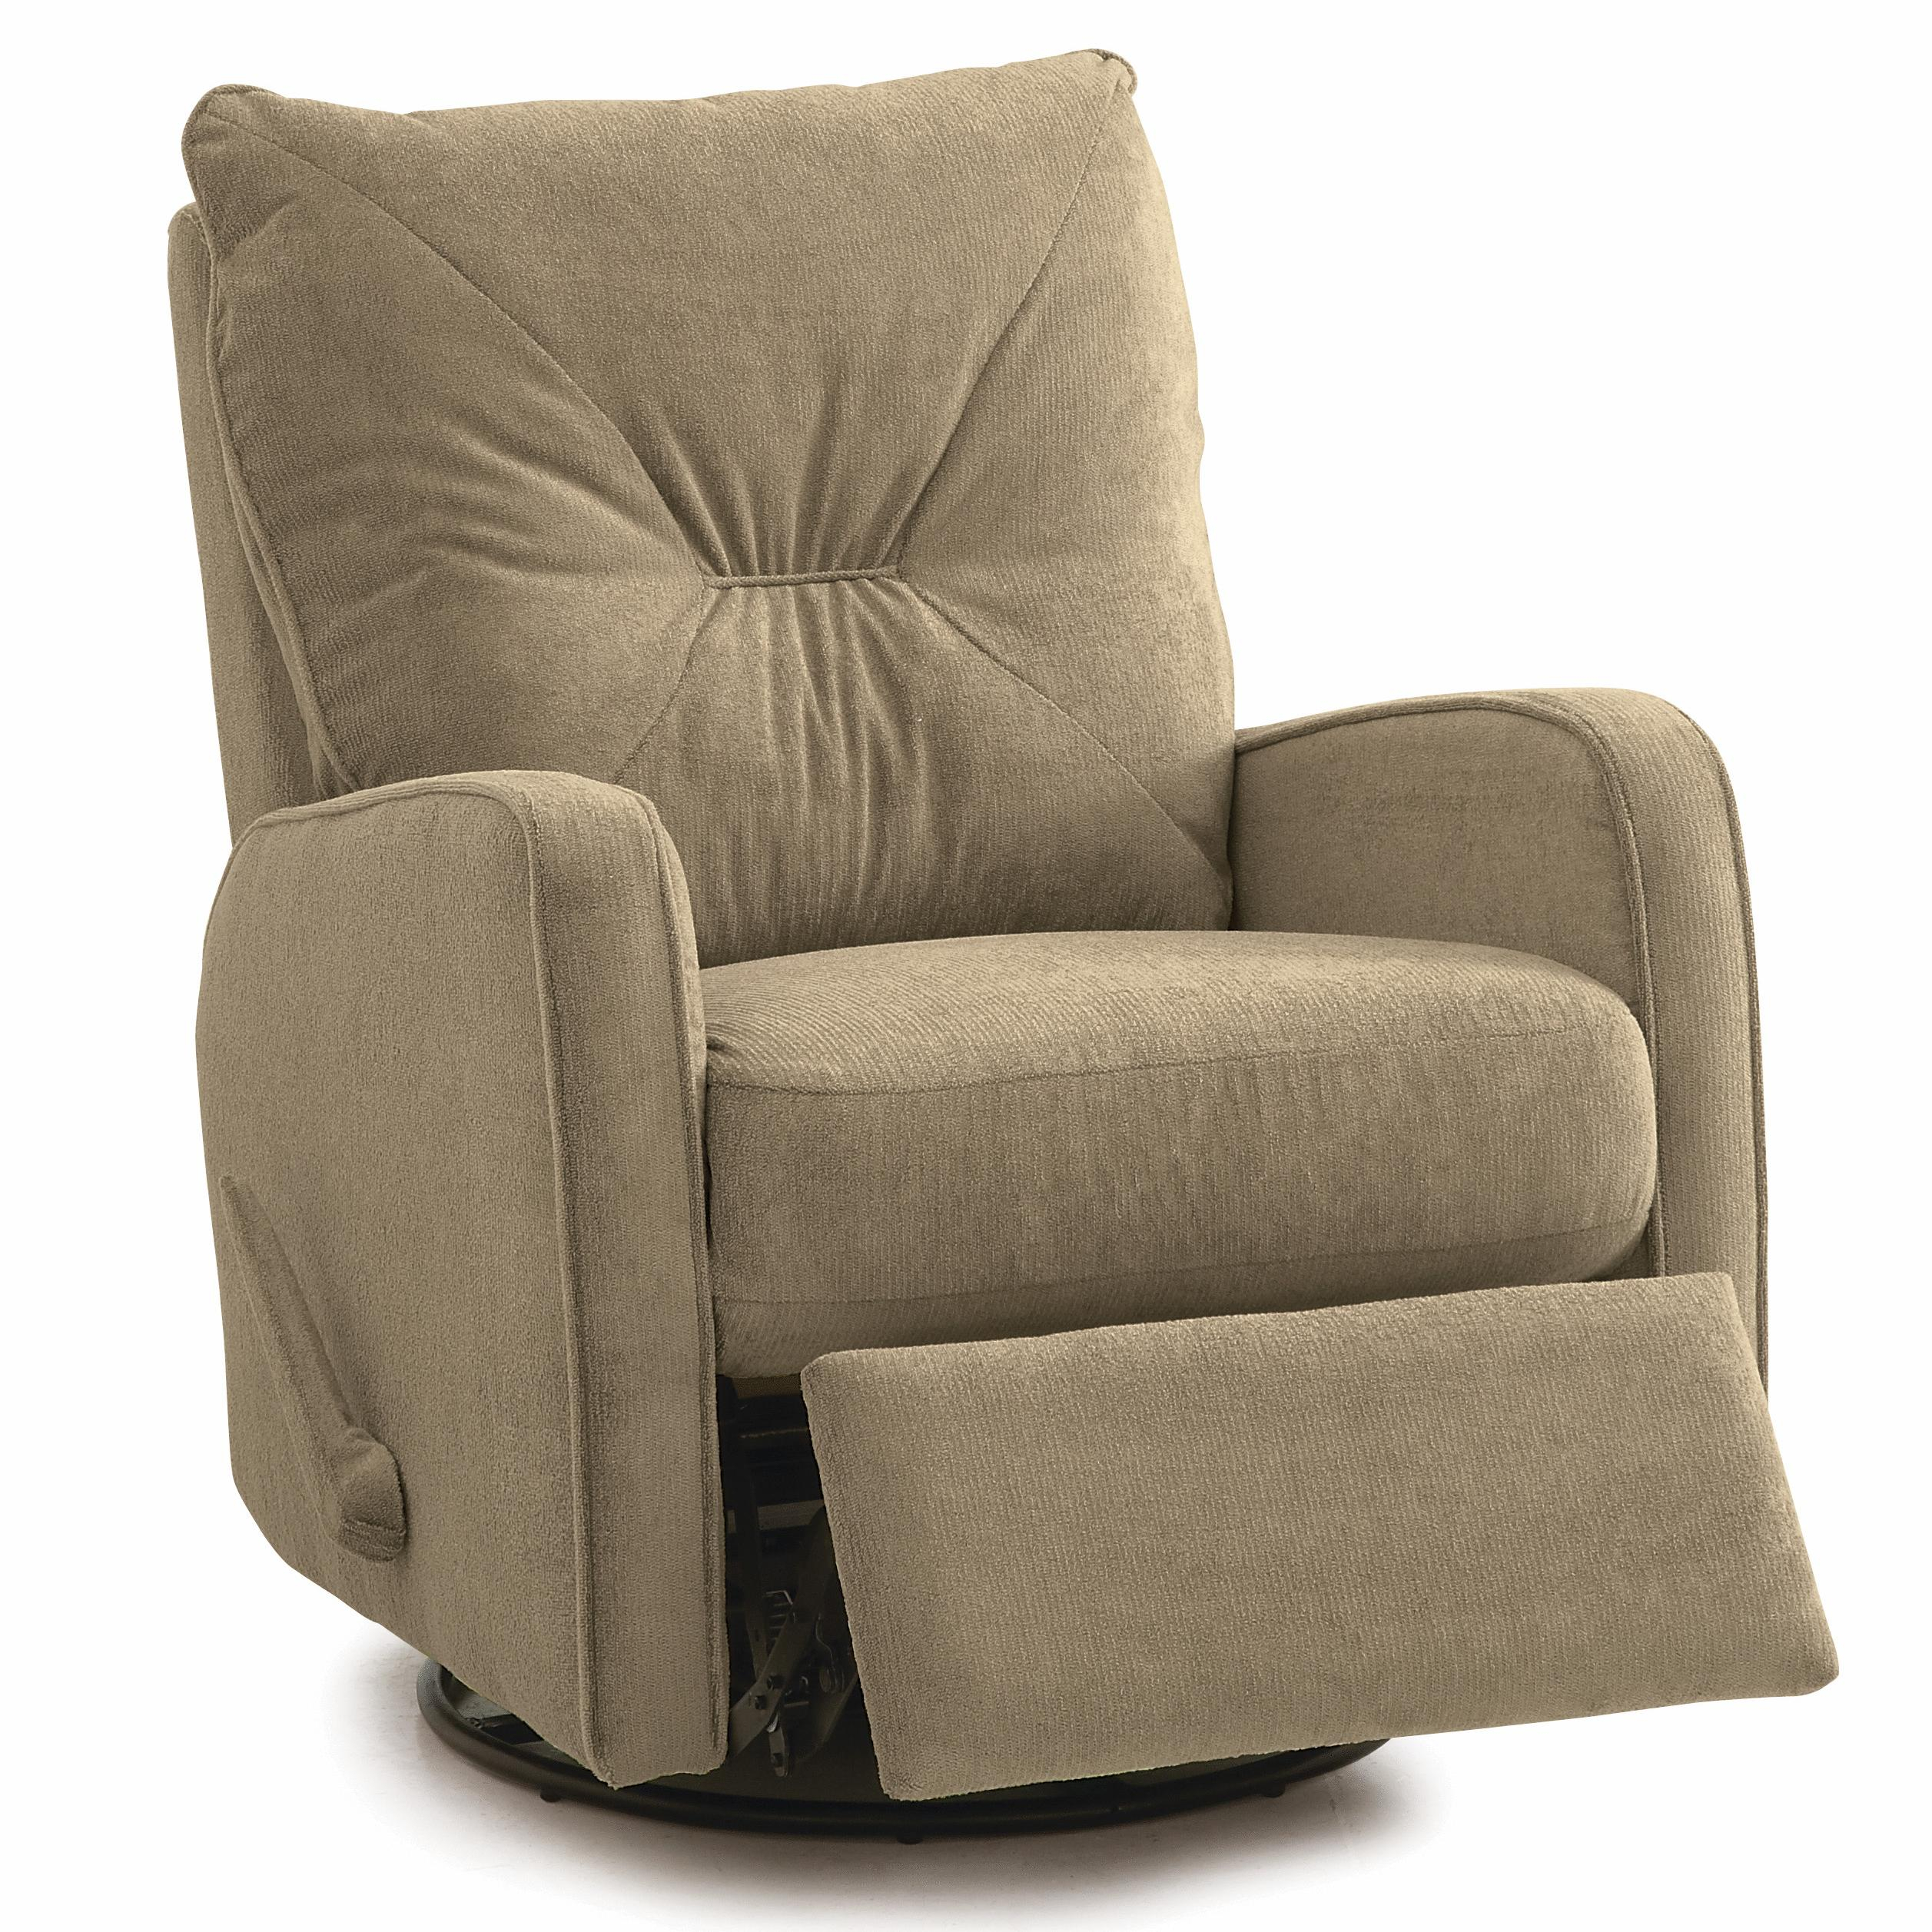 Palliser Theo 42002 33 Swivel Rocking Reclining Chair | Dunk For Theo Ii Swivel Chairs (Image 15 of 25)